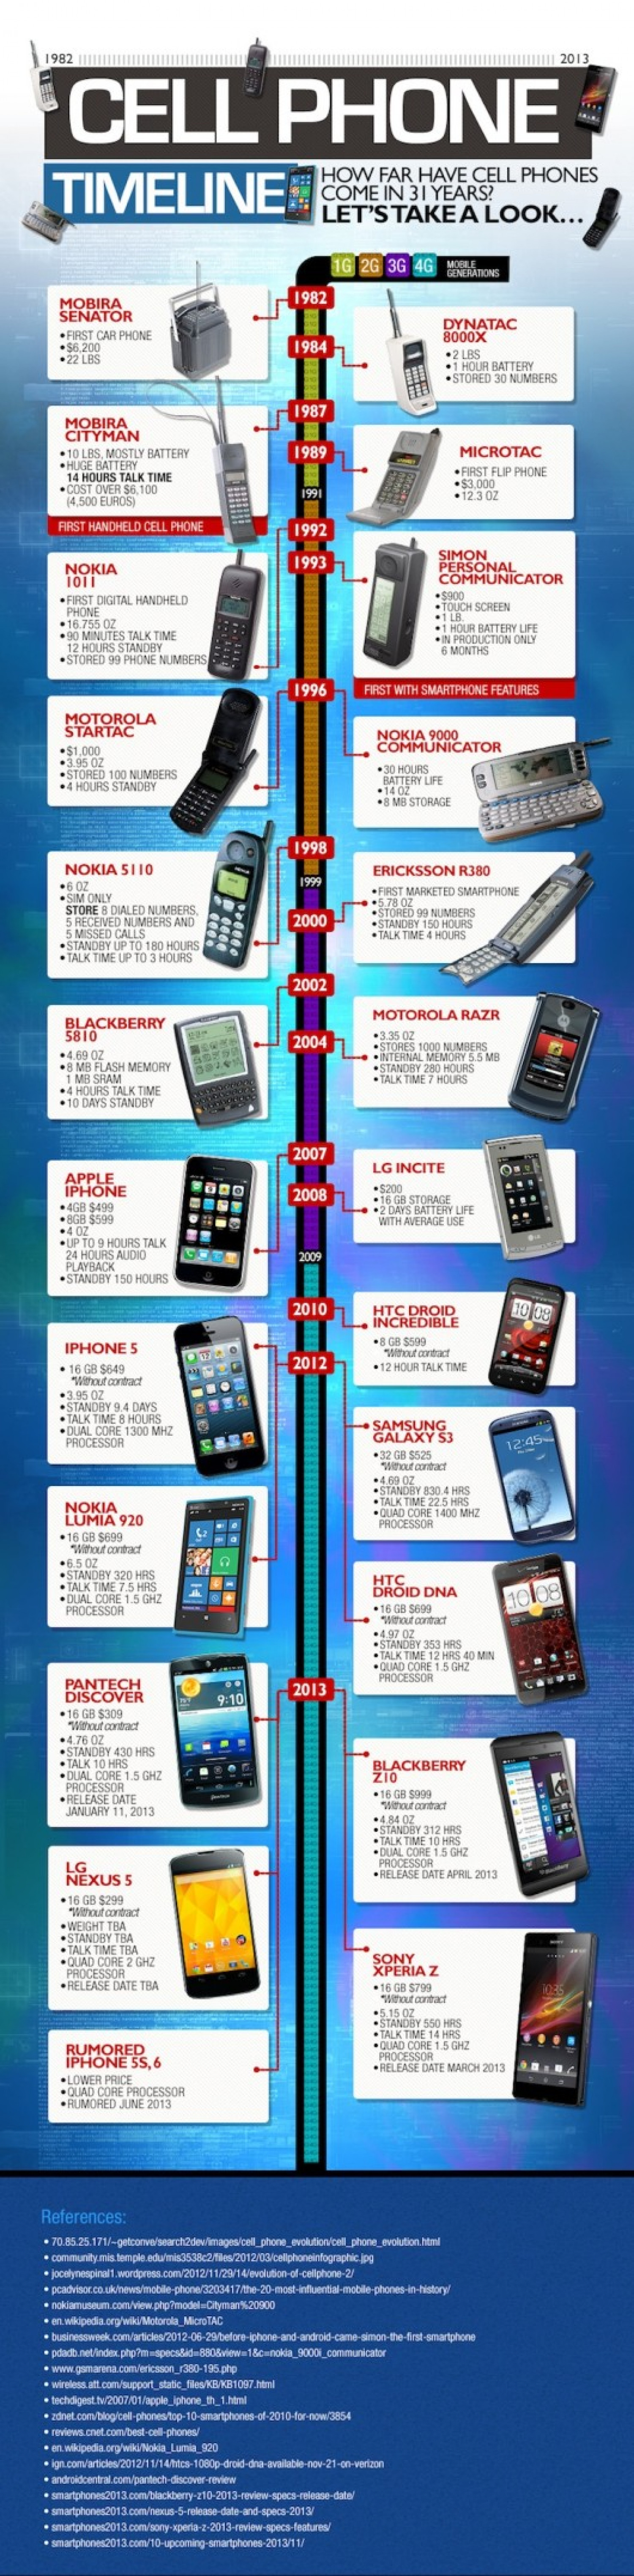 TimeLine Of Cell Phones Infographic